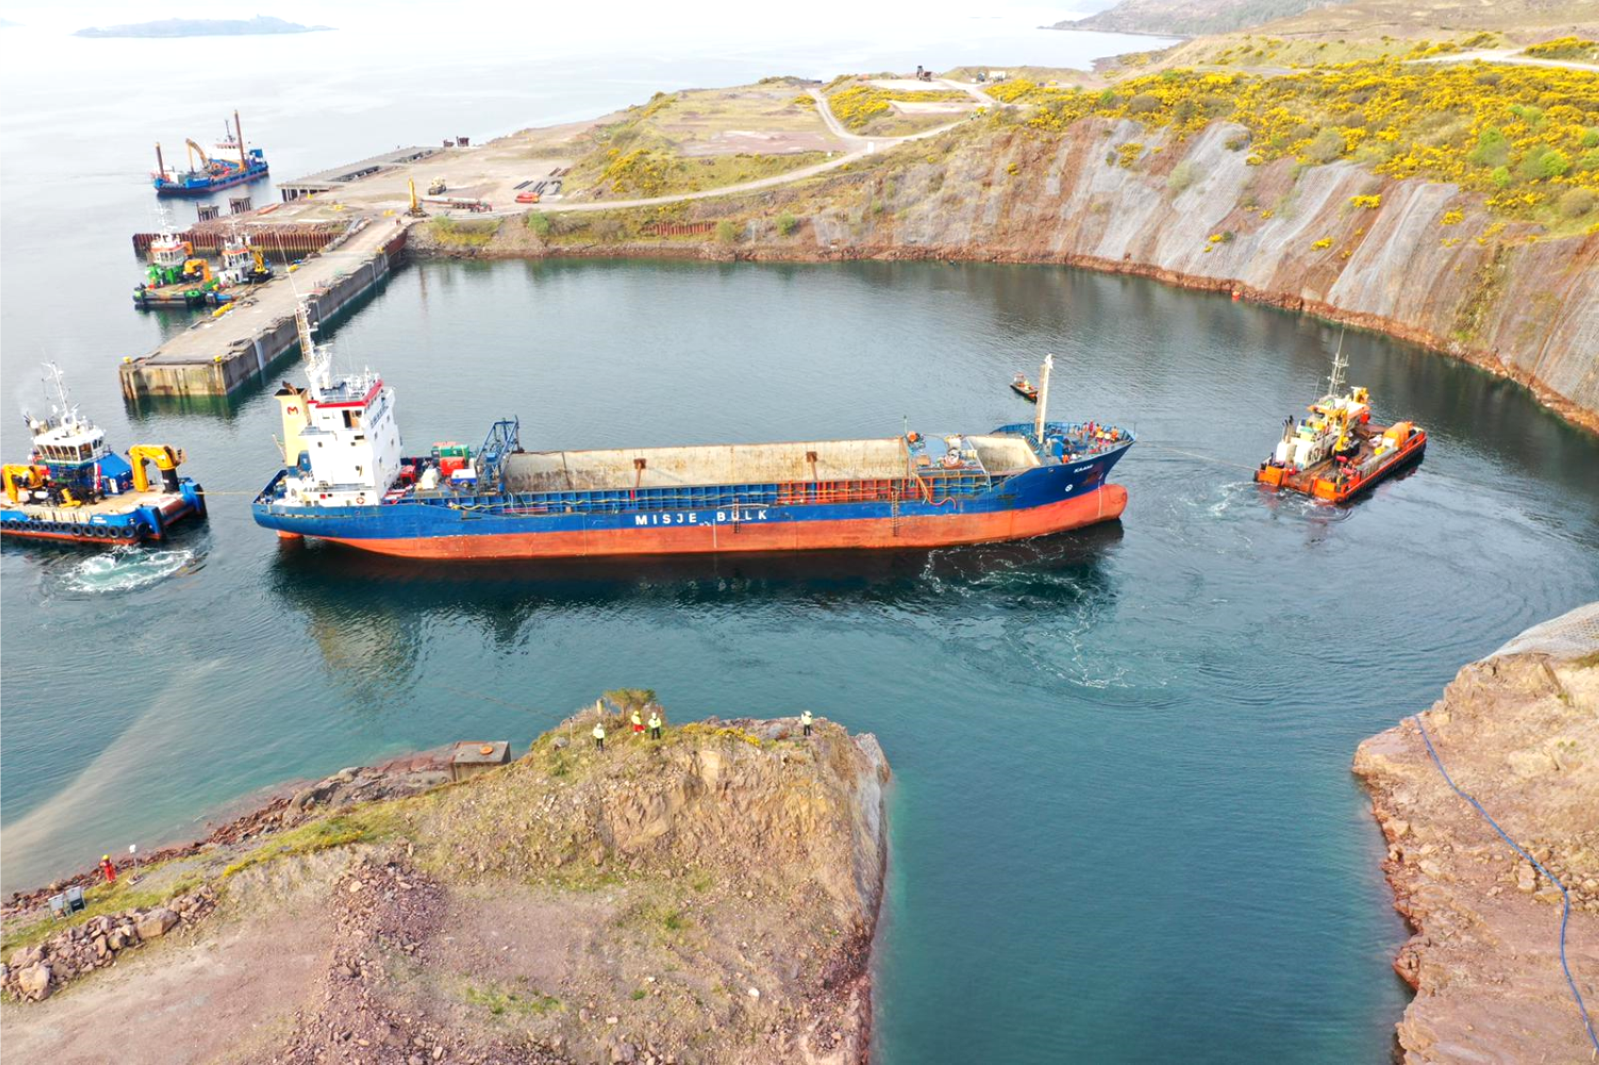 The MV Kaami docking in Kishorn after being taken under tow from The Minch